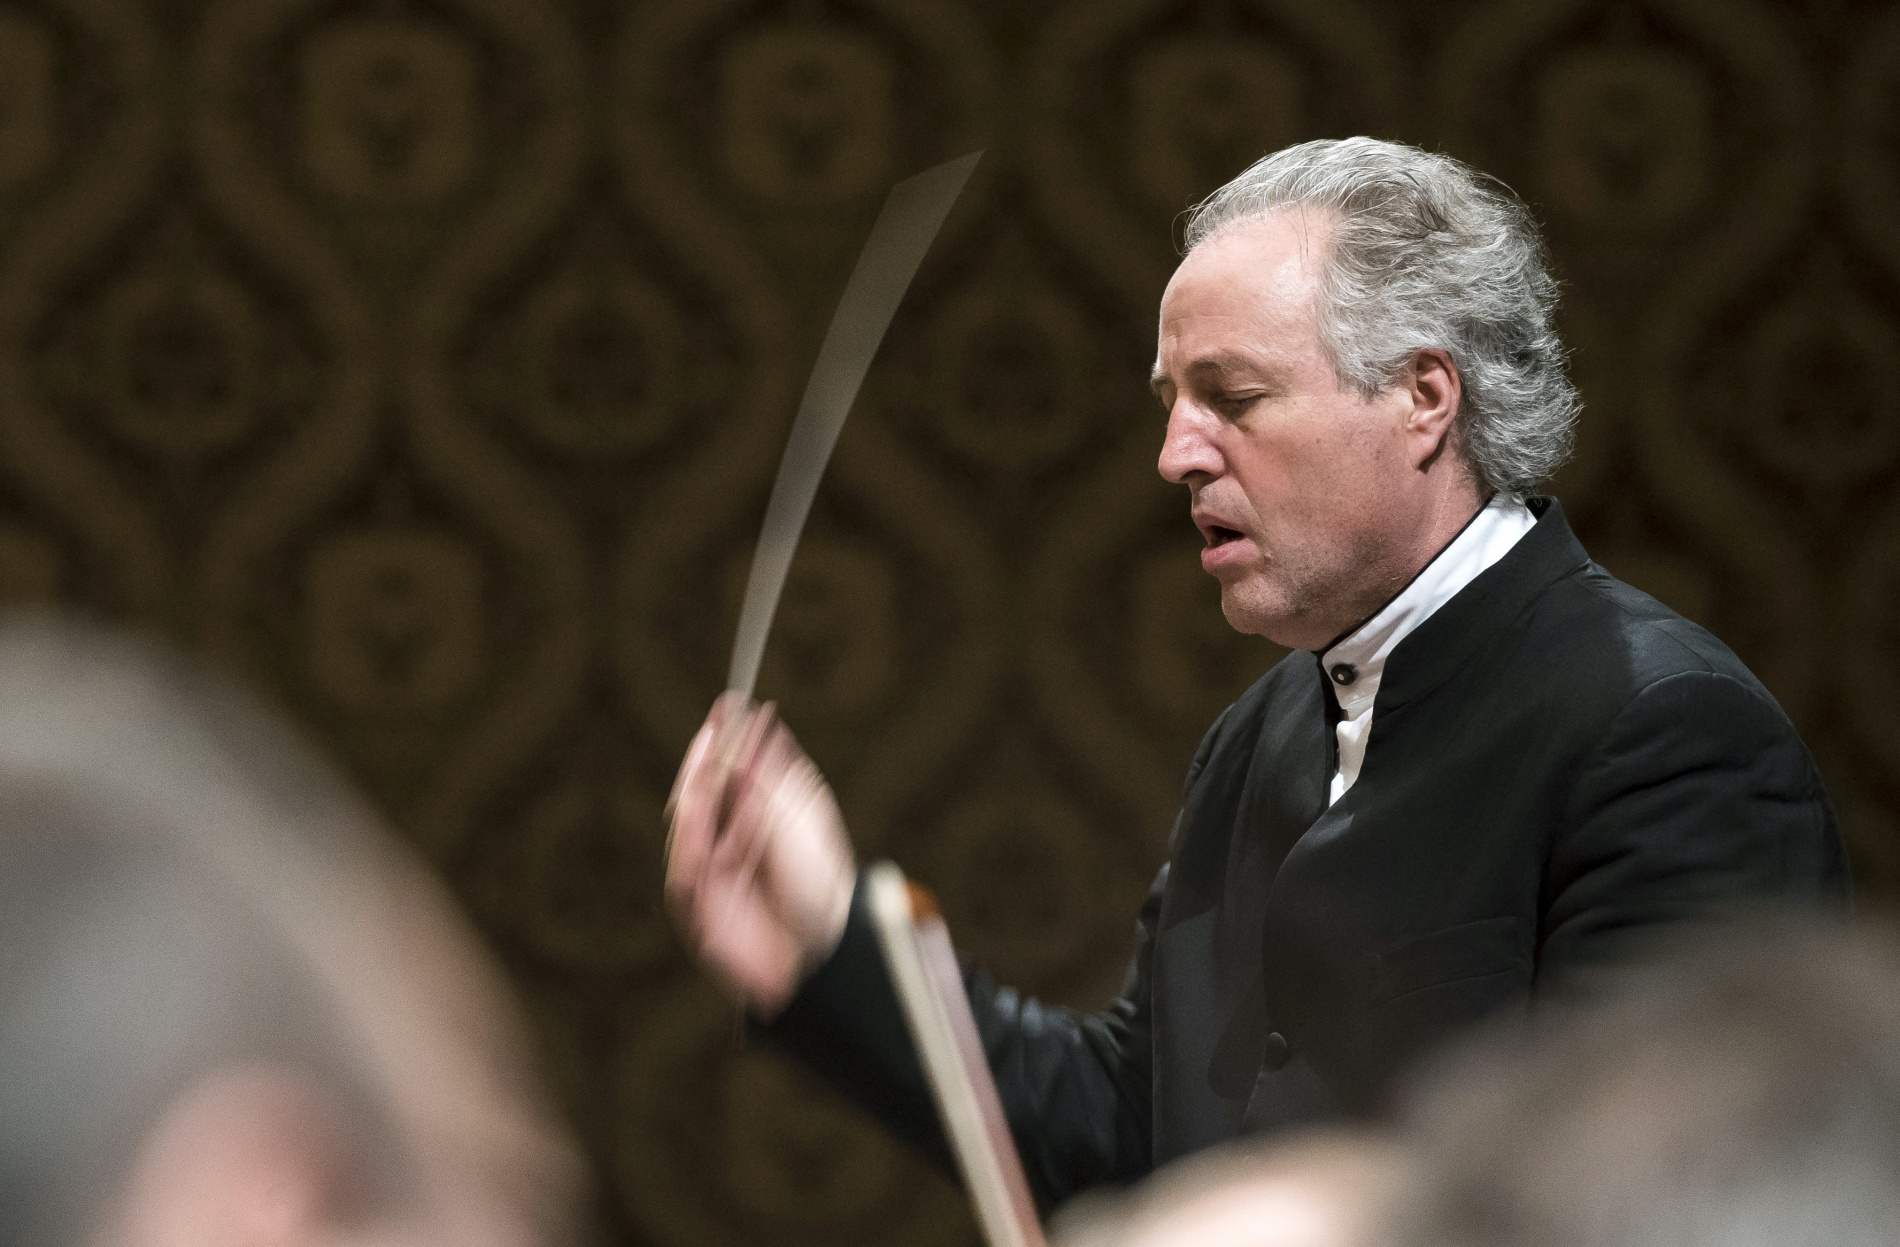 Manfred Honeck conducts the Epic of Gilgamesh on 25–27 January